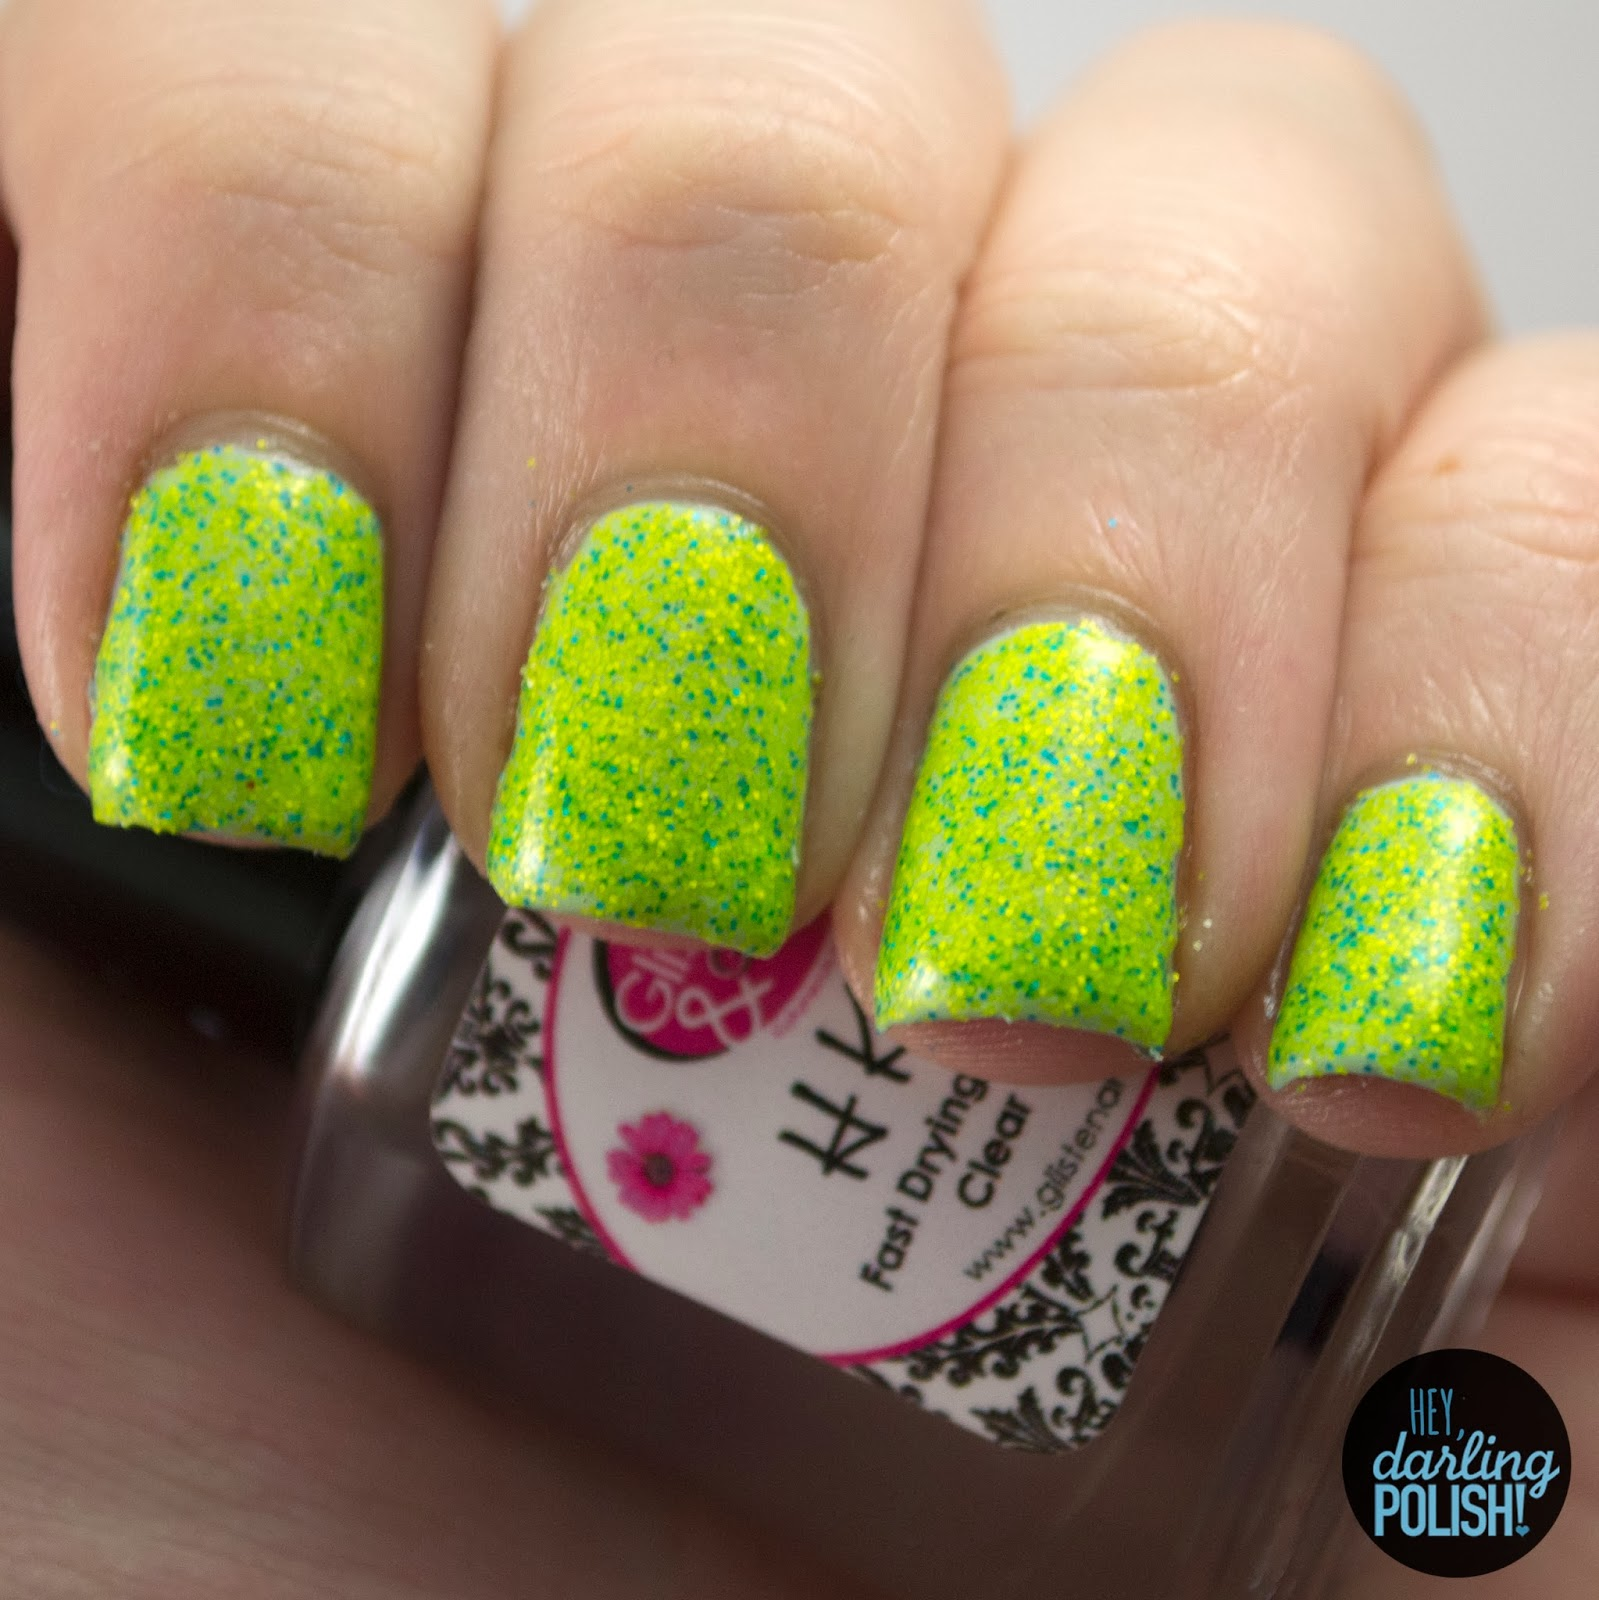 green, yellow, blue, sand art, micro glitter, nails, nail polish, indie, indie polish, sick lacquers, glitter, matter glitter, hey darling polish,